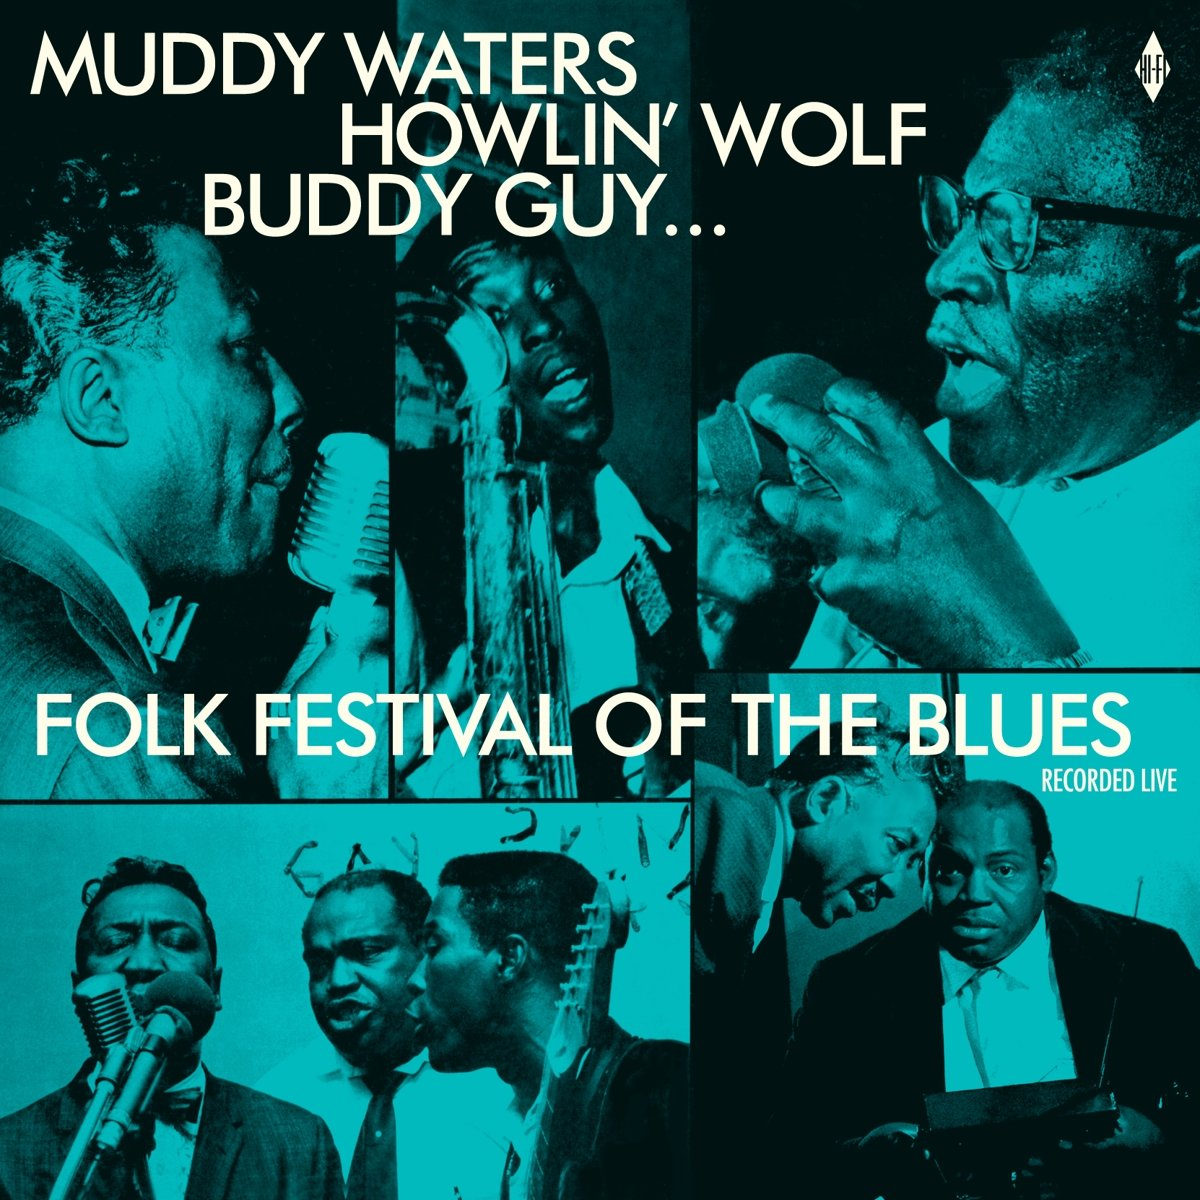 Vinilo : WATERS,MUDDY / HOWLIN WOLF / BUDDY GUY / SONNY BOY WILLIAMSON / WILLIE D - Folk Festival Of The Blues With Muddy Waters, Howlin Wolf, Buddy Guy,sonny Boy Williamson, Willie Dixon / Various (180 Gram Vinyl, Remastered, Spain - Import)